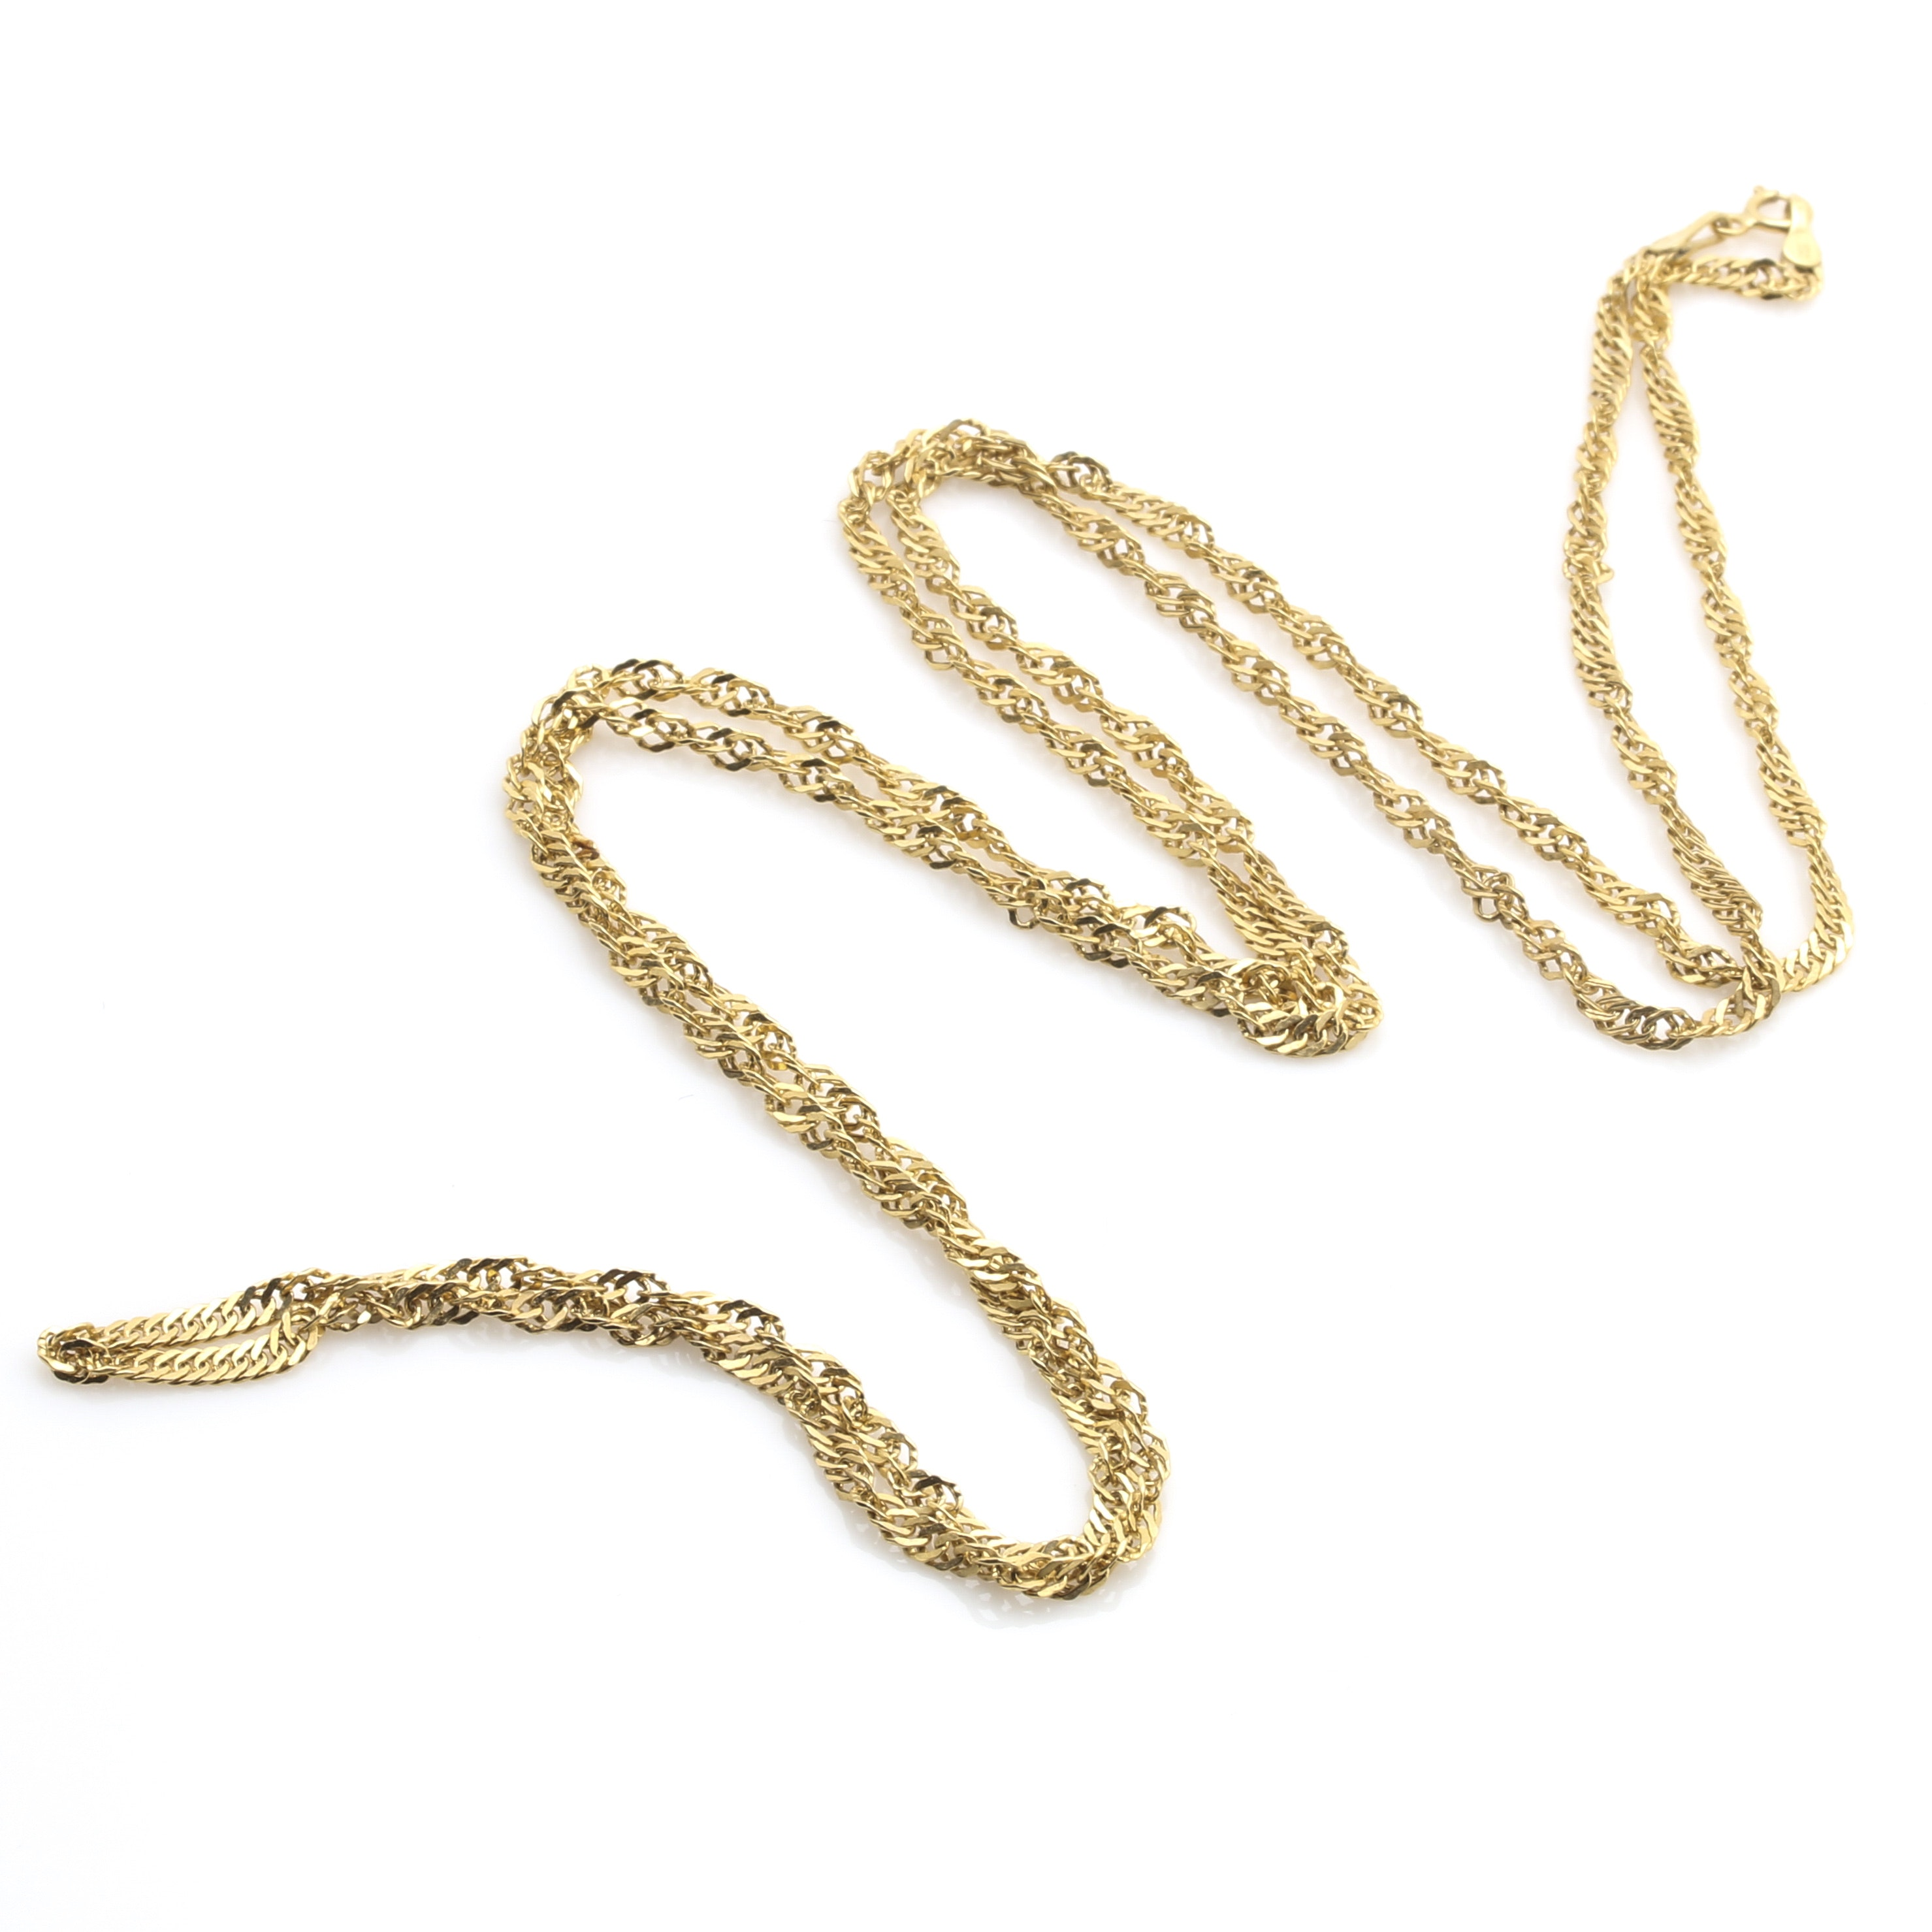 14K Yellow Gold Milor Twisted Curb Link Necklace